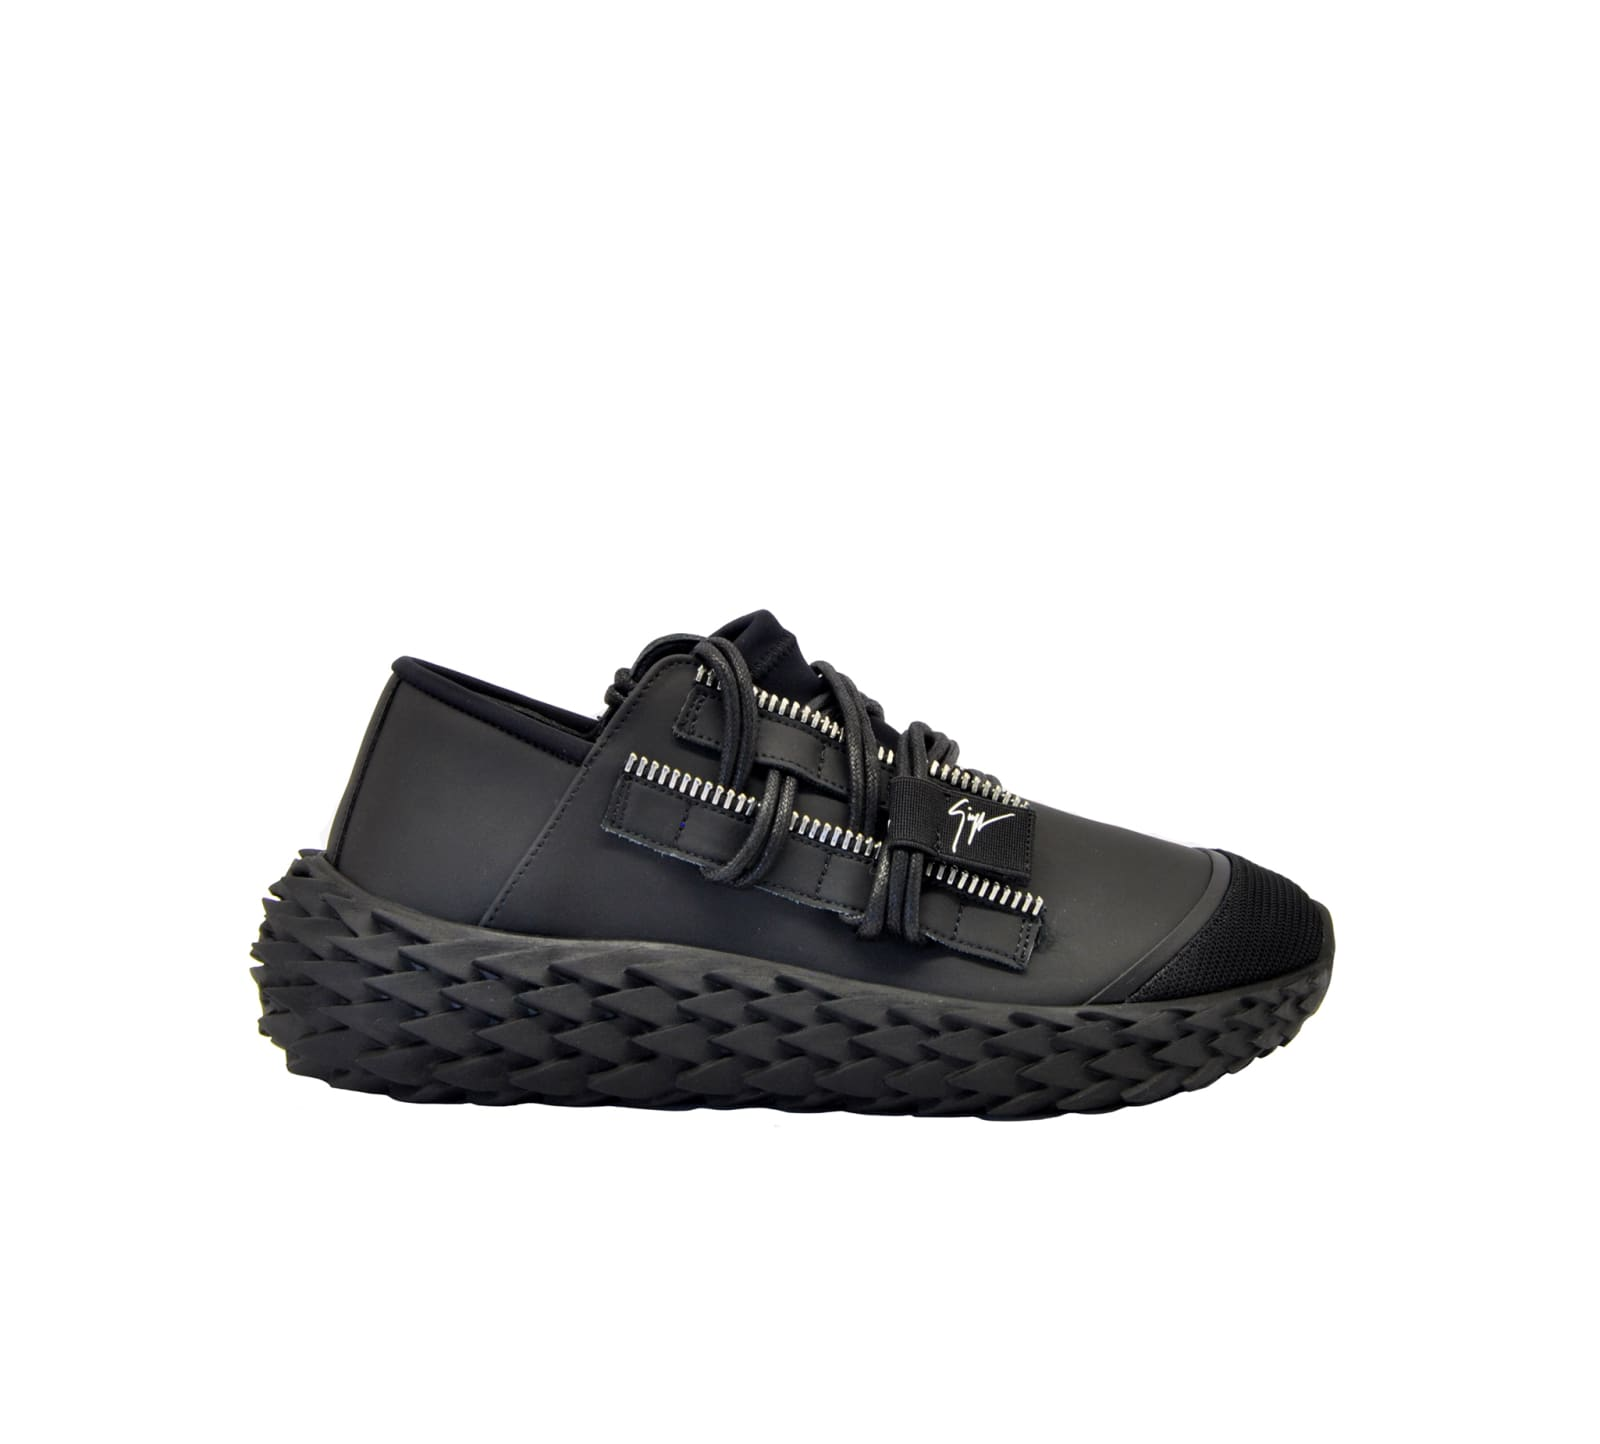 new arrivals newest selection luxury fashion Best price on the market at italist | Giuseppe Zanotti Giuseppe Zanotti  Sneakers Nero Urchin